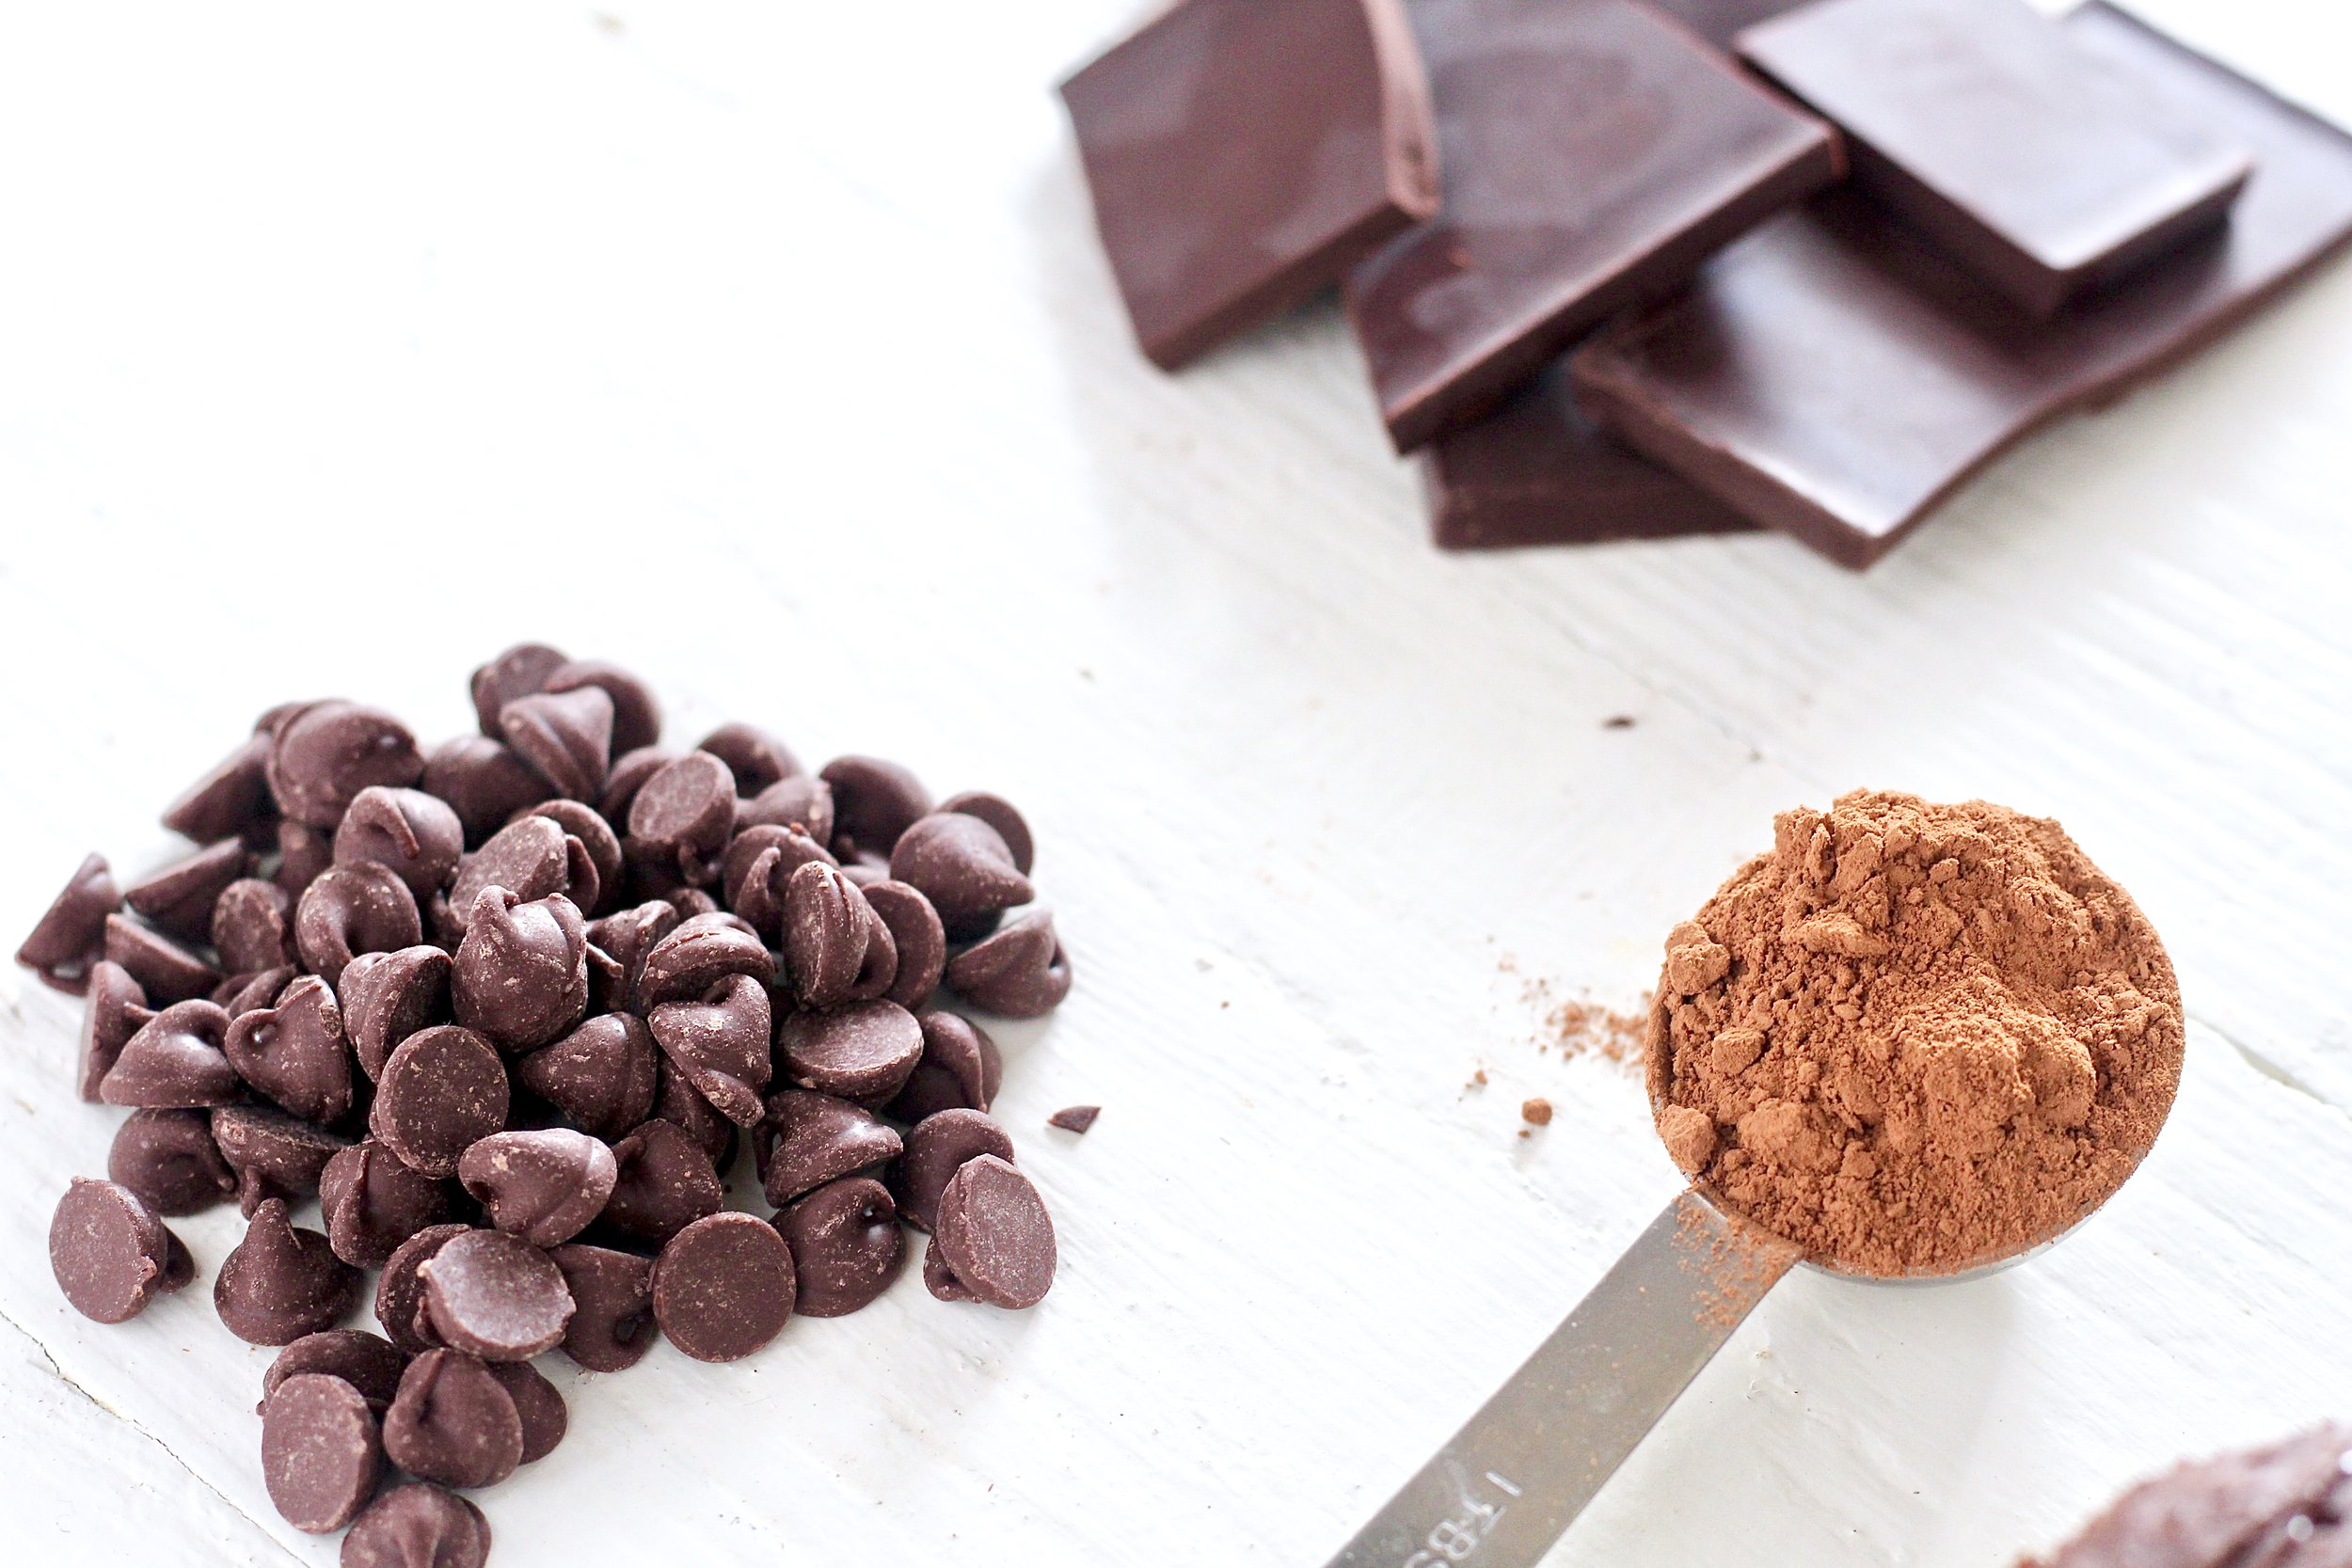 Can eating chocolate everyday help your heart?